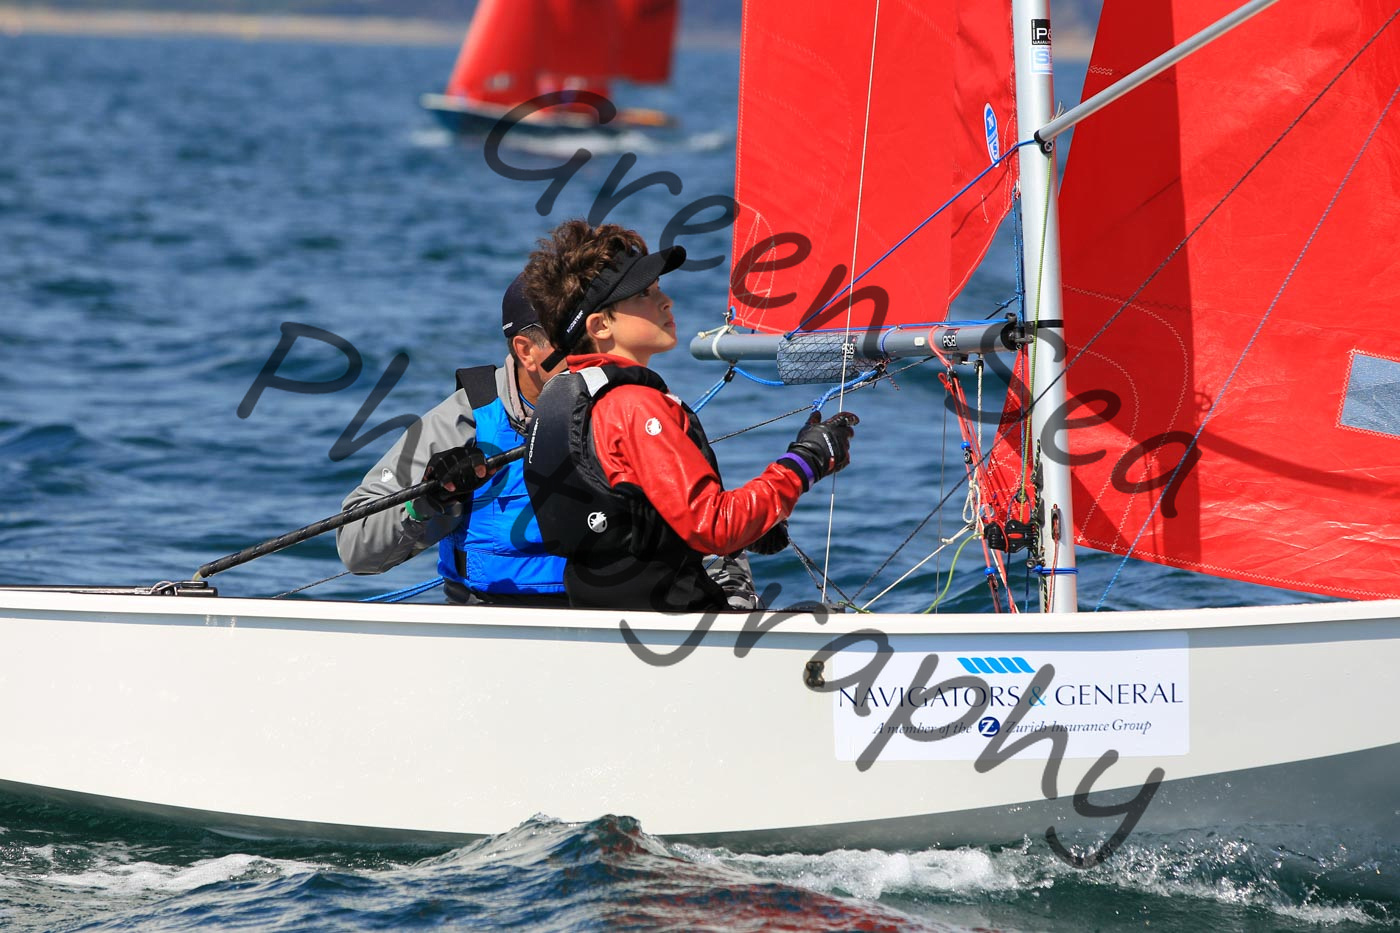 A close up of the helm and crew of a white Mirror dinghy racing under spinnaker